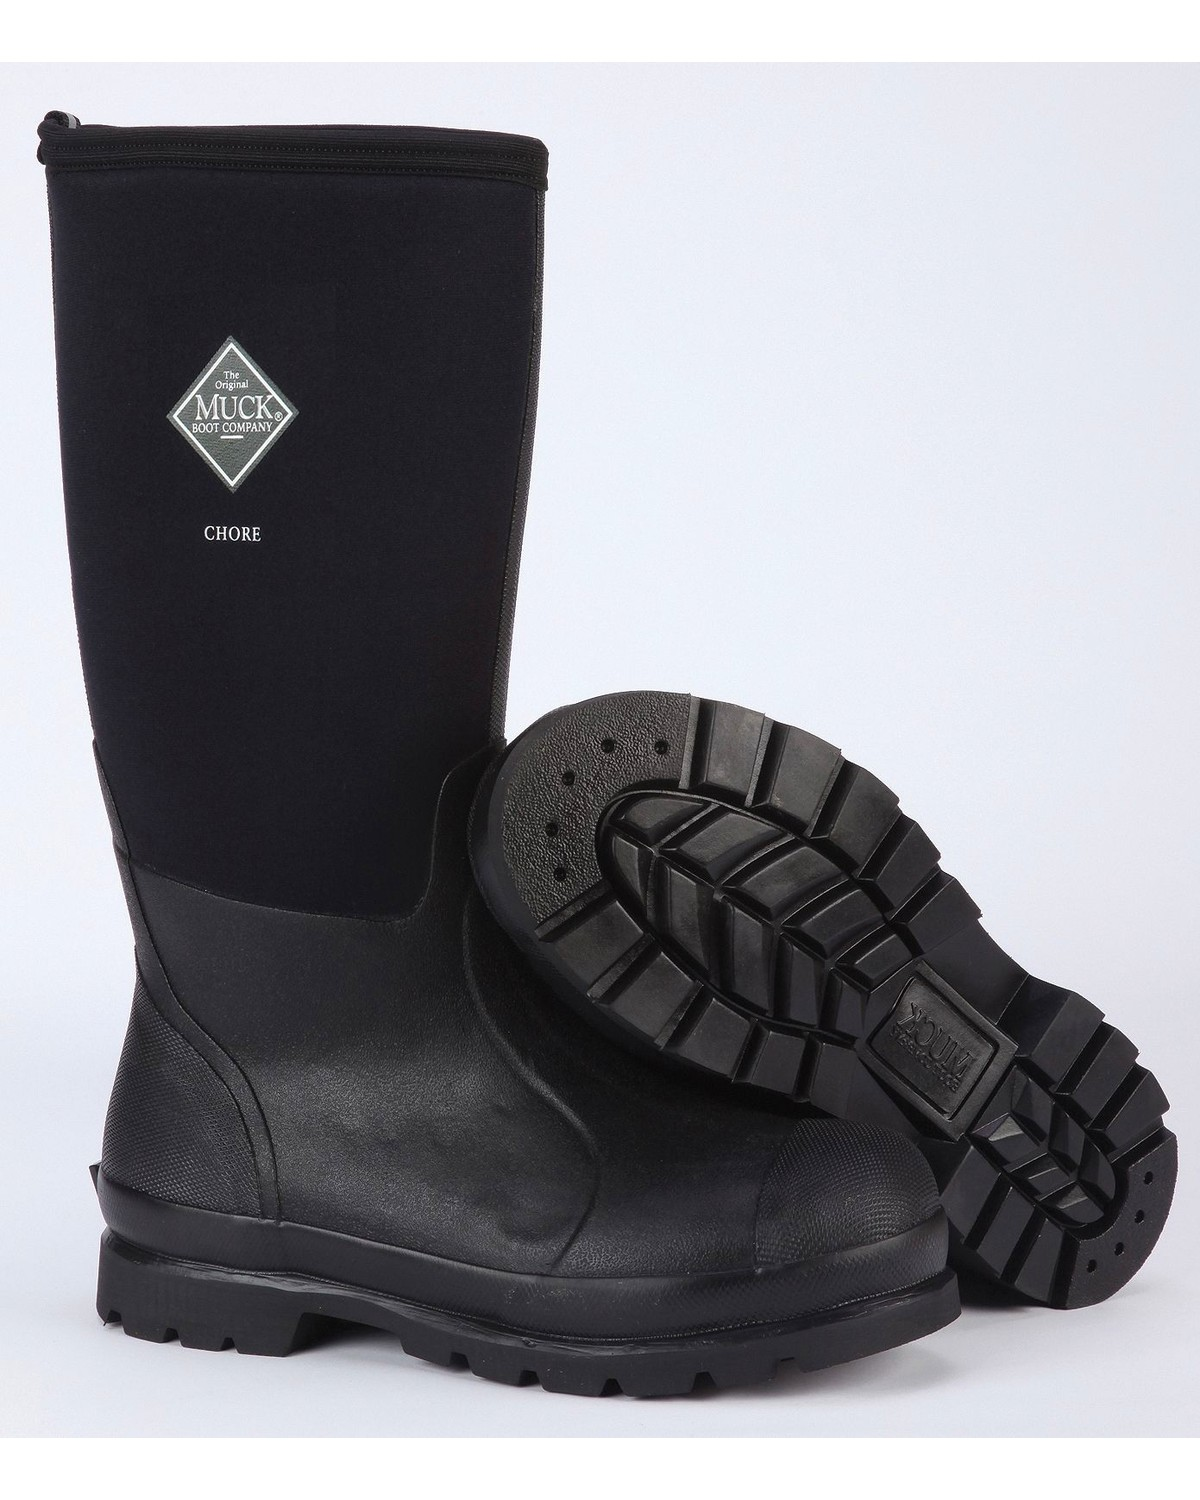 The Original Muck Boot Co. Chore All